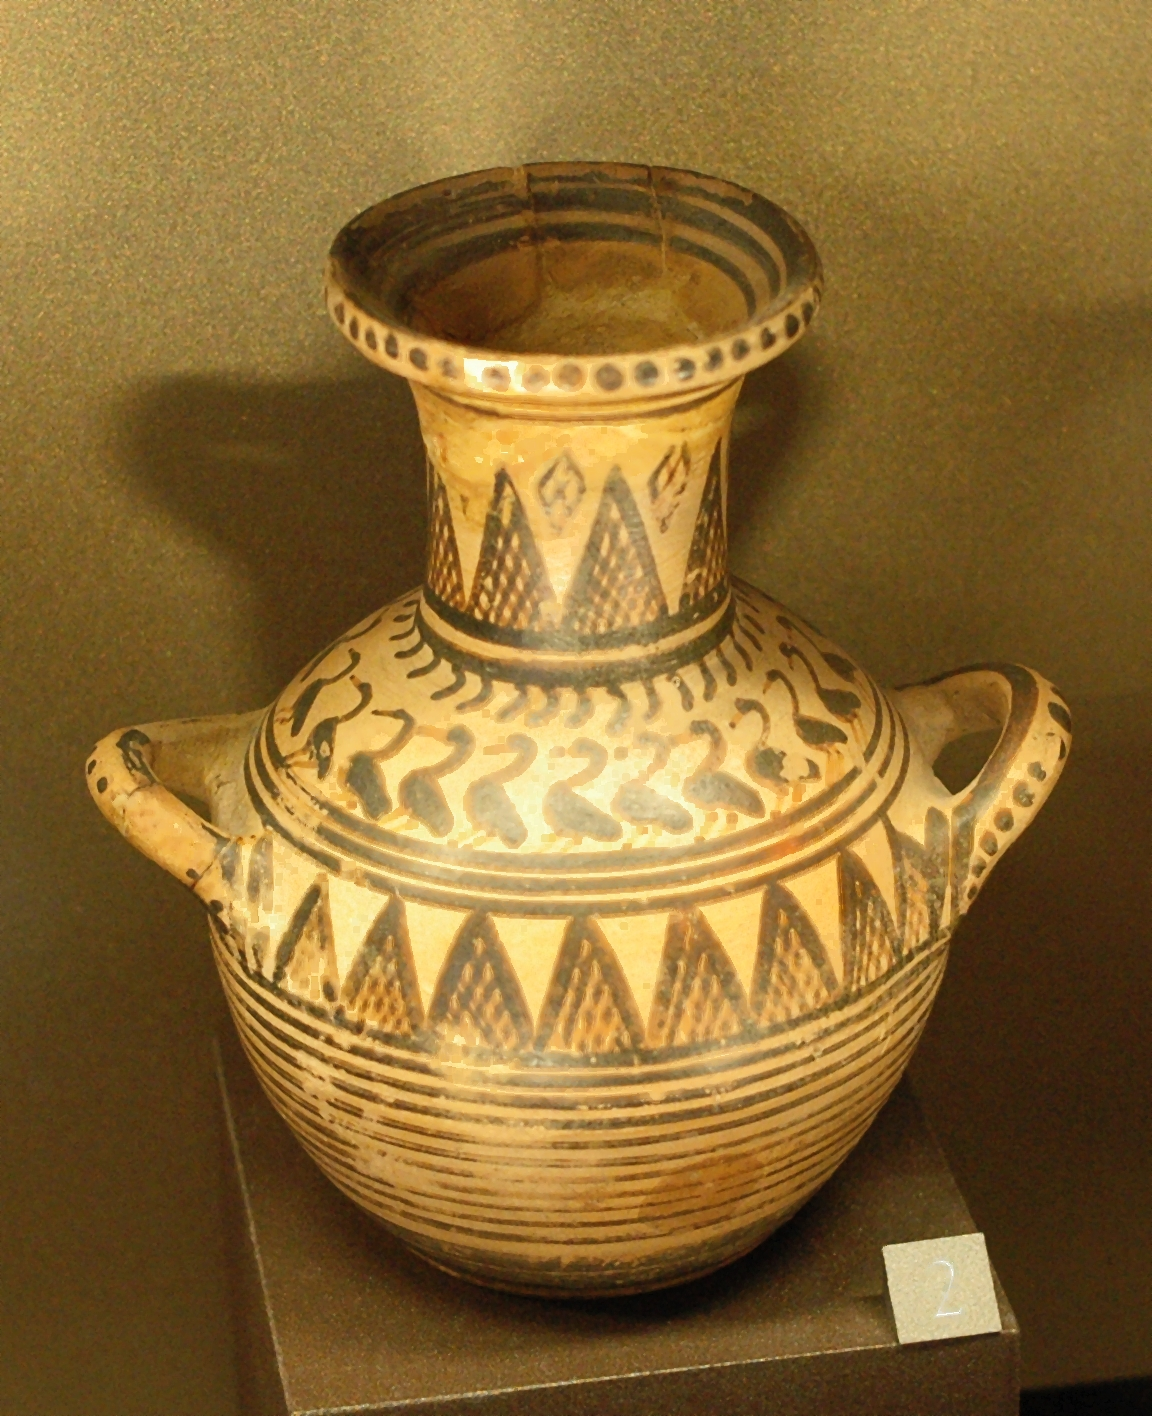 http://dic.academic.ru/pictures/wiki/files/77/Miniature_hydria_Thebes_Louvre_A566.jpg